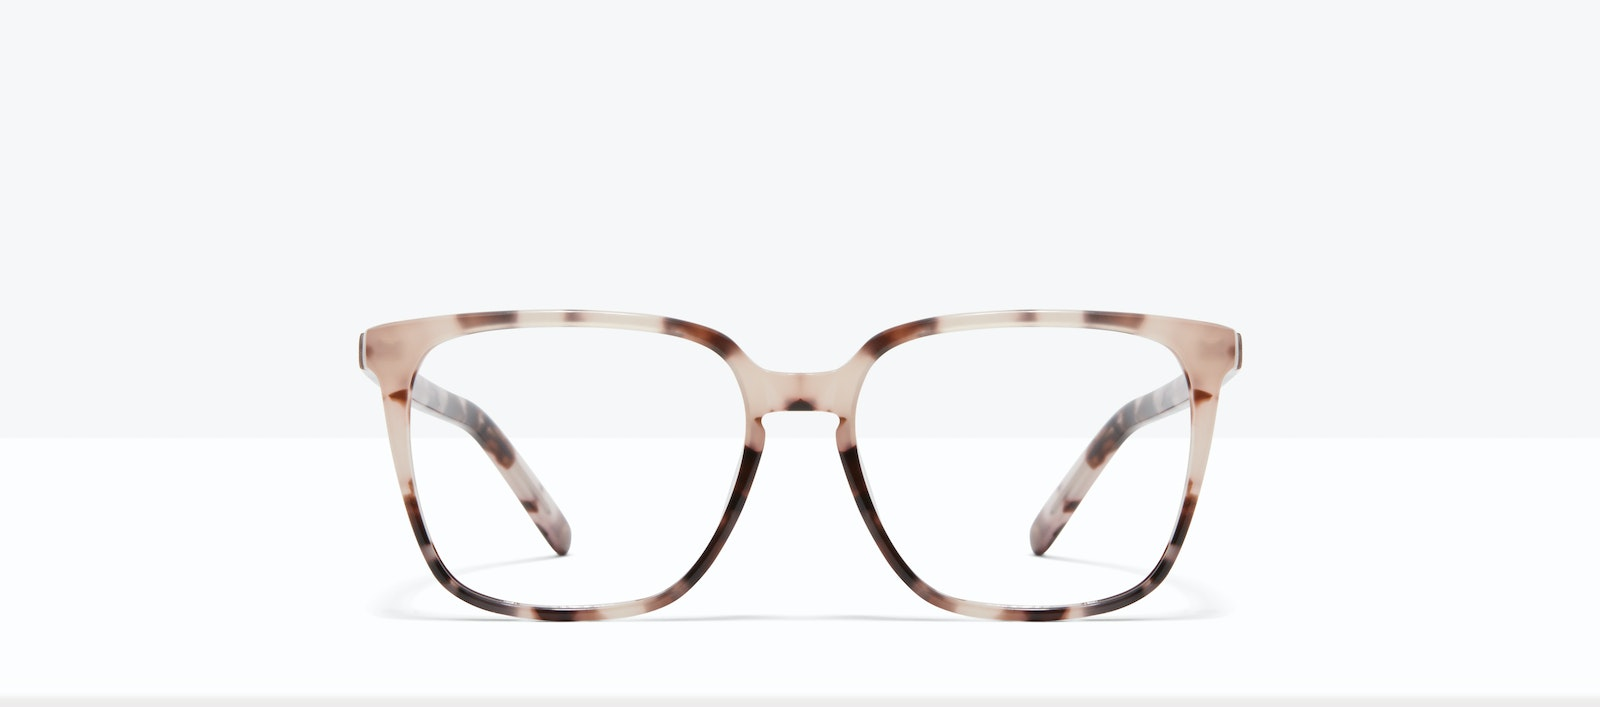 Affordable Fashion Glasses Square Eyeglasses Women Runway S Marbled Pink Front